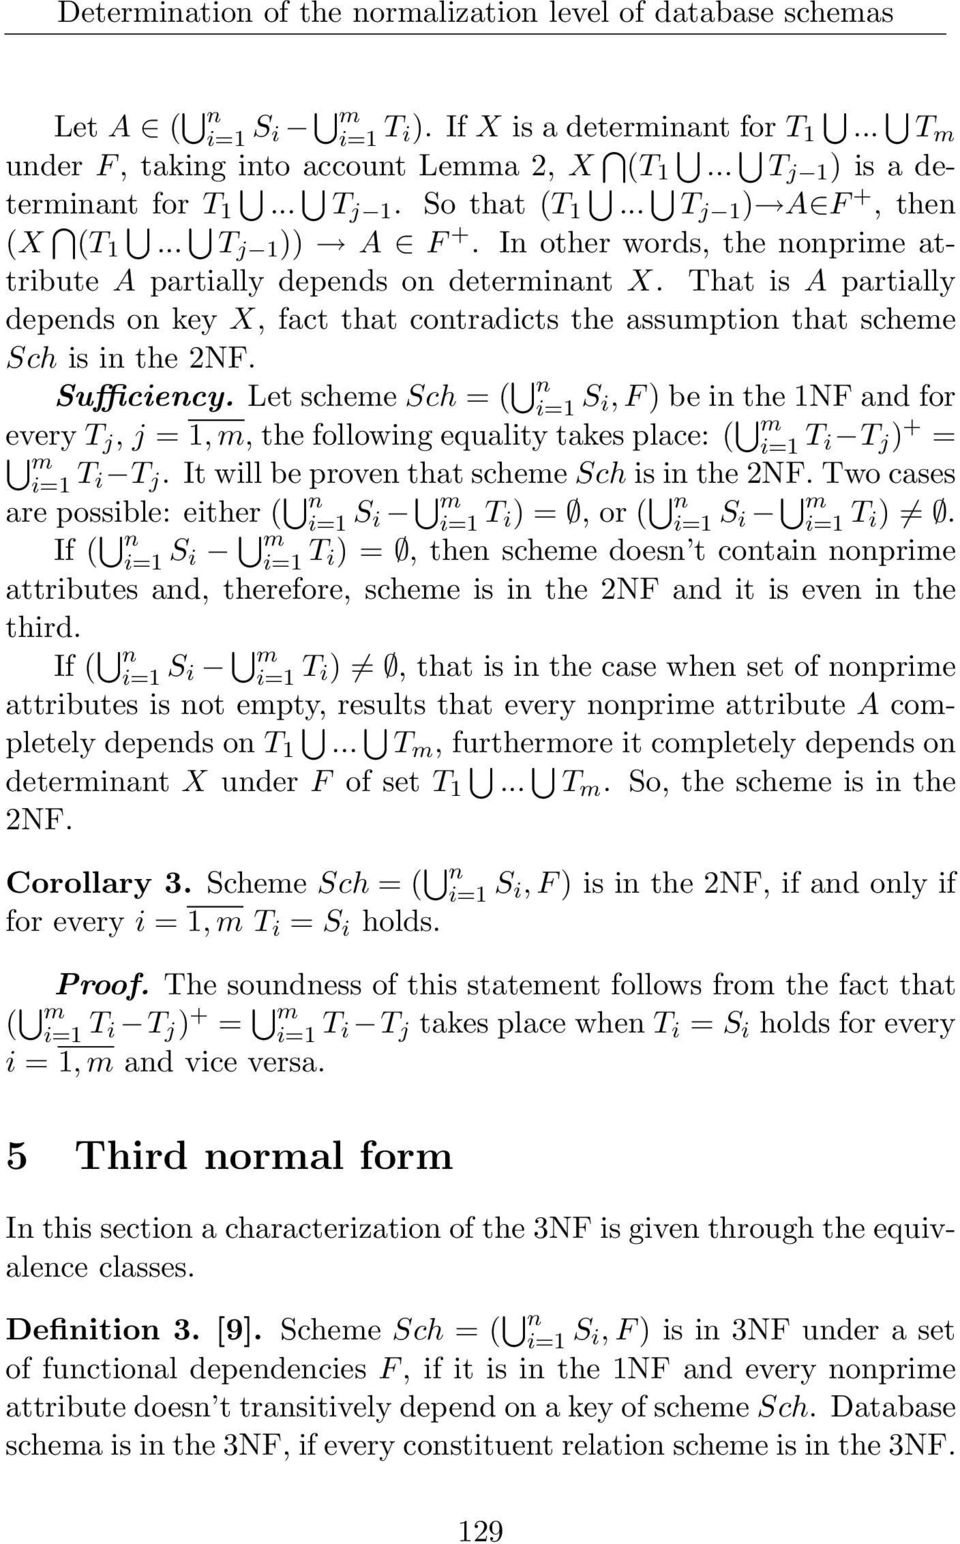 That is A partially depends on key X, fact that contradicts the assumption that scheme Sch is in the 2NF. Sufficiency.